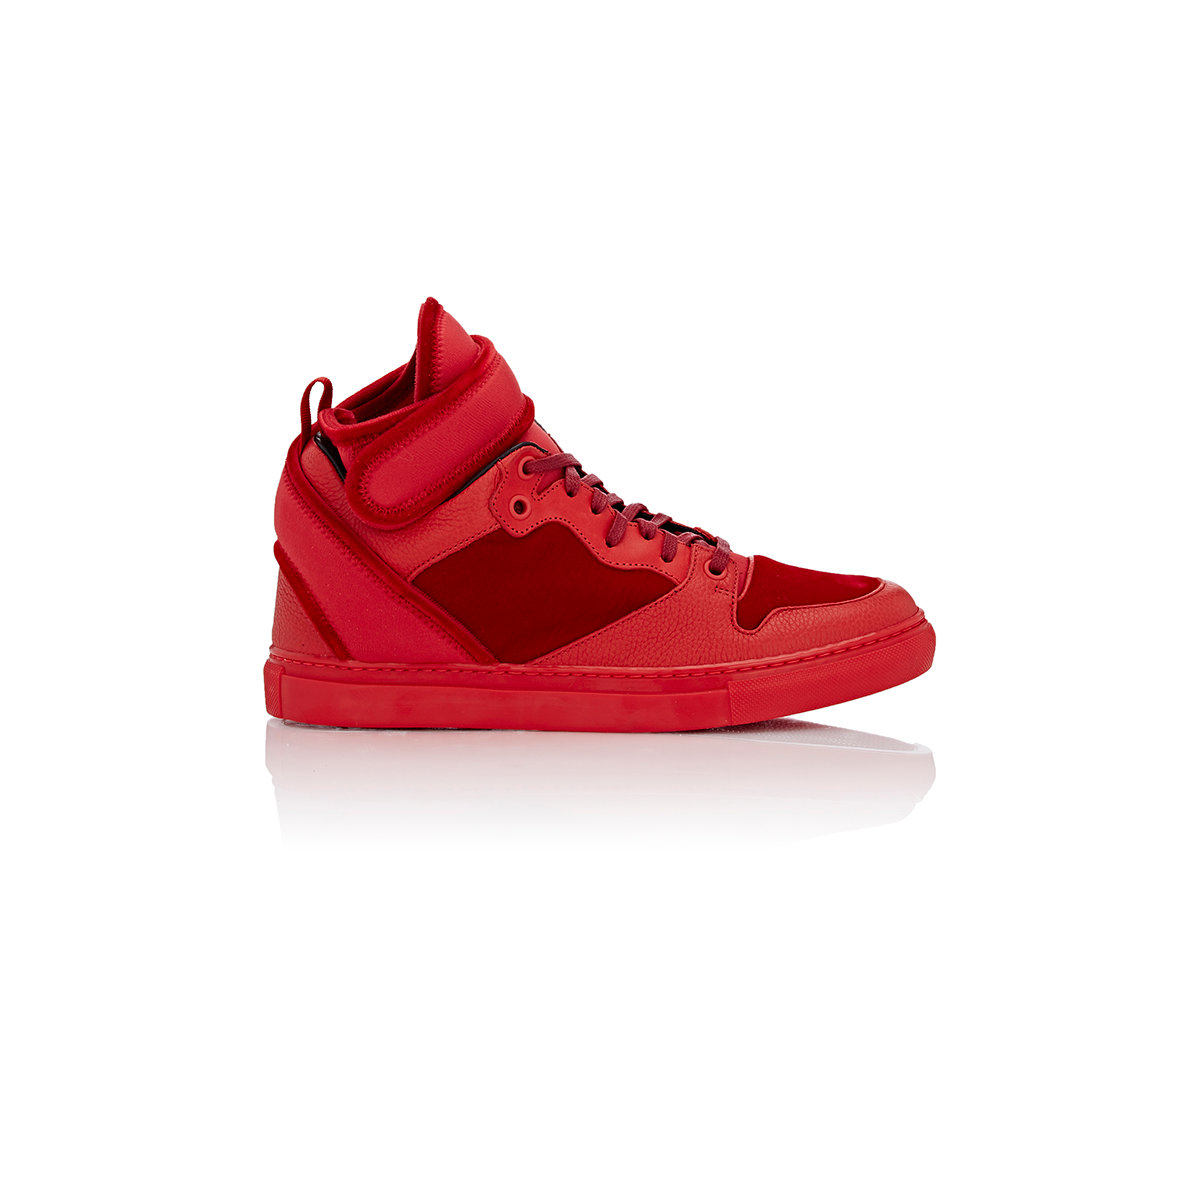 balenciaga leather amp velvet anklestrap sneakers in red lyst